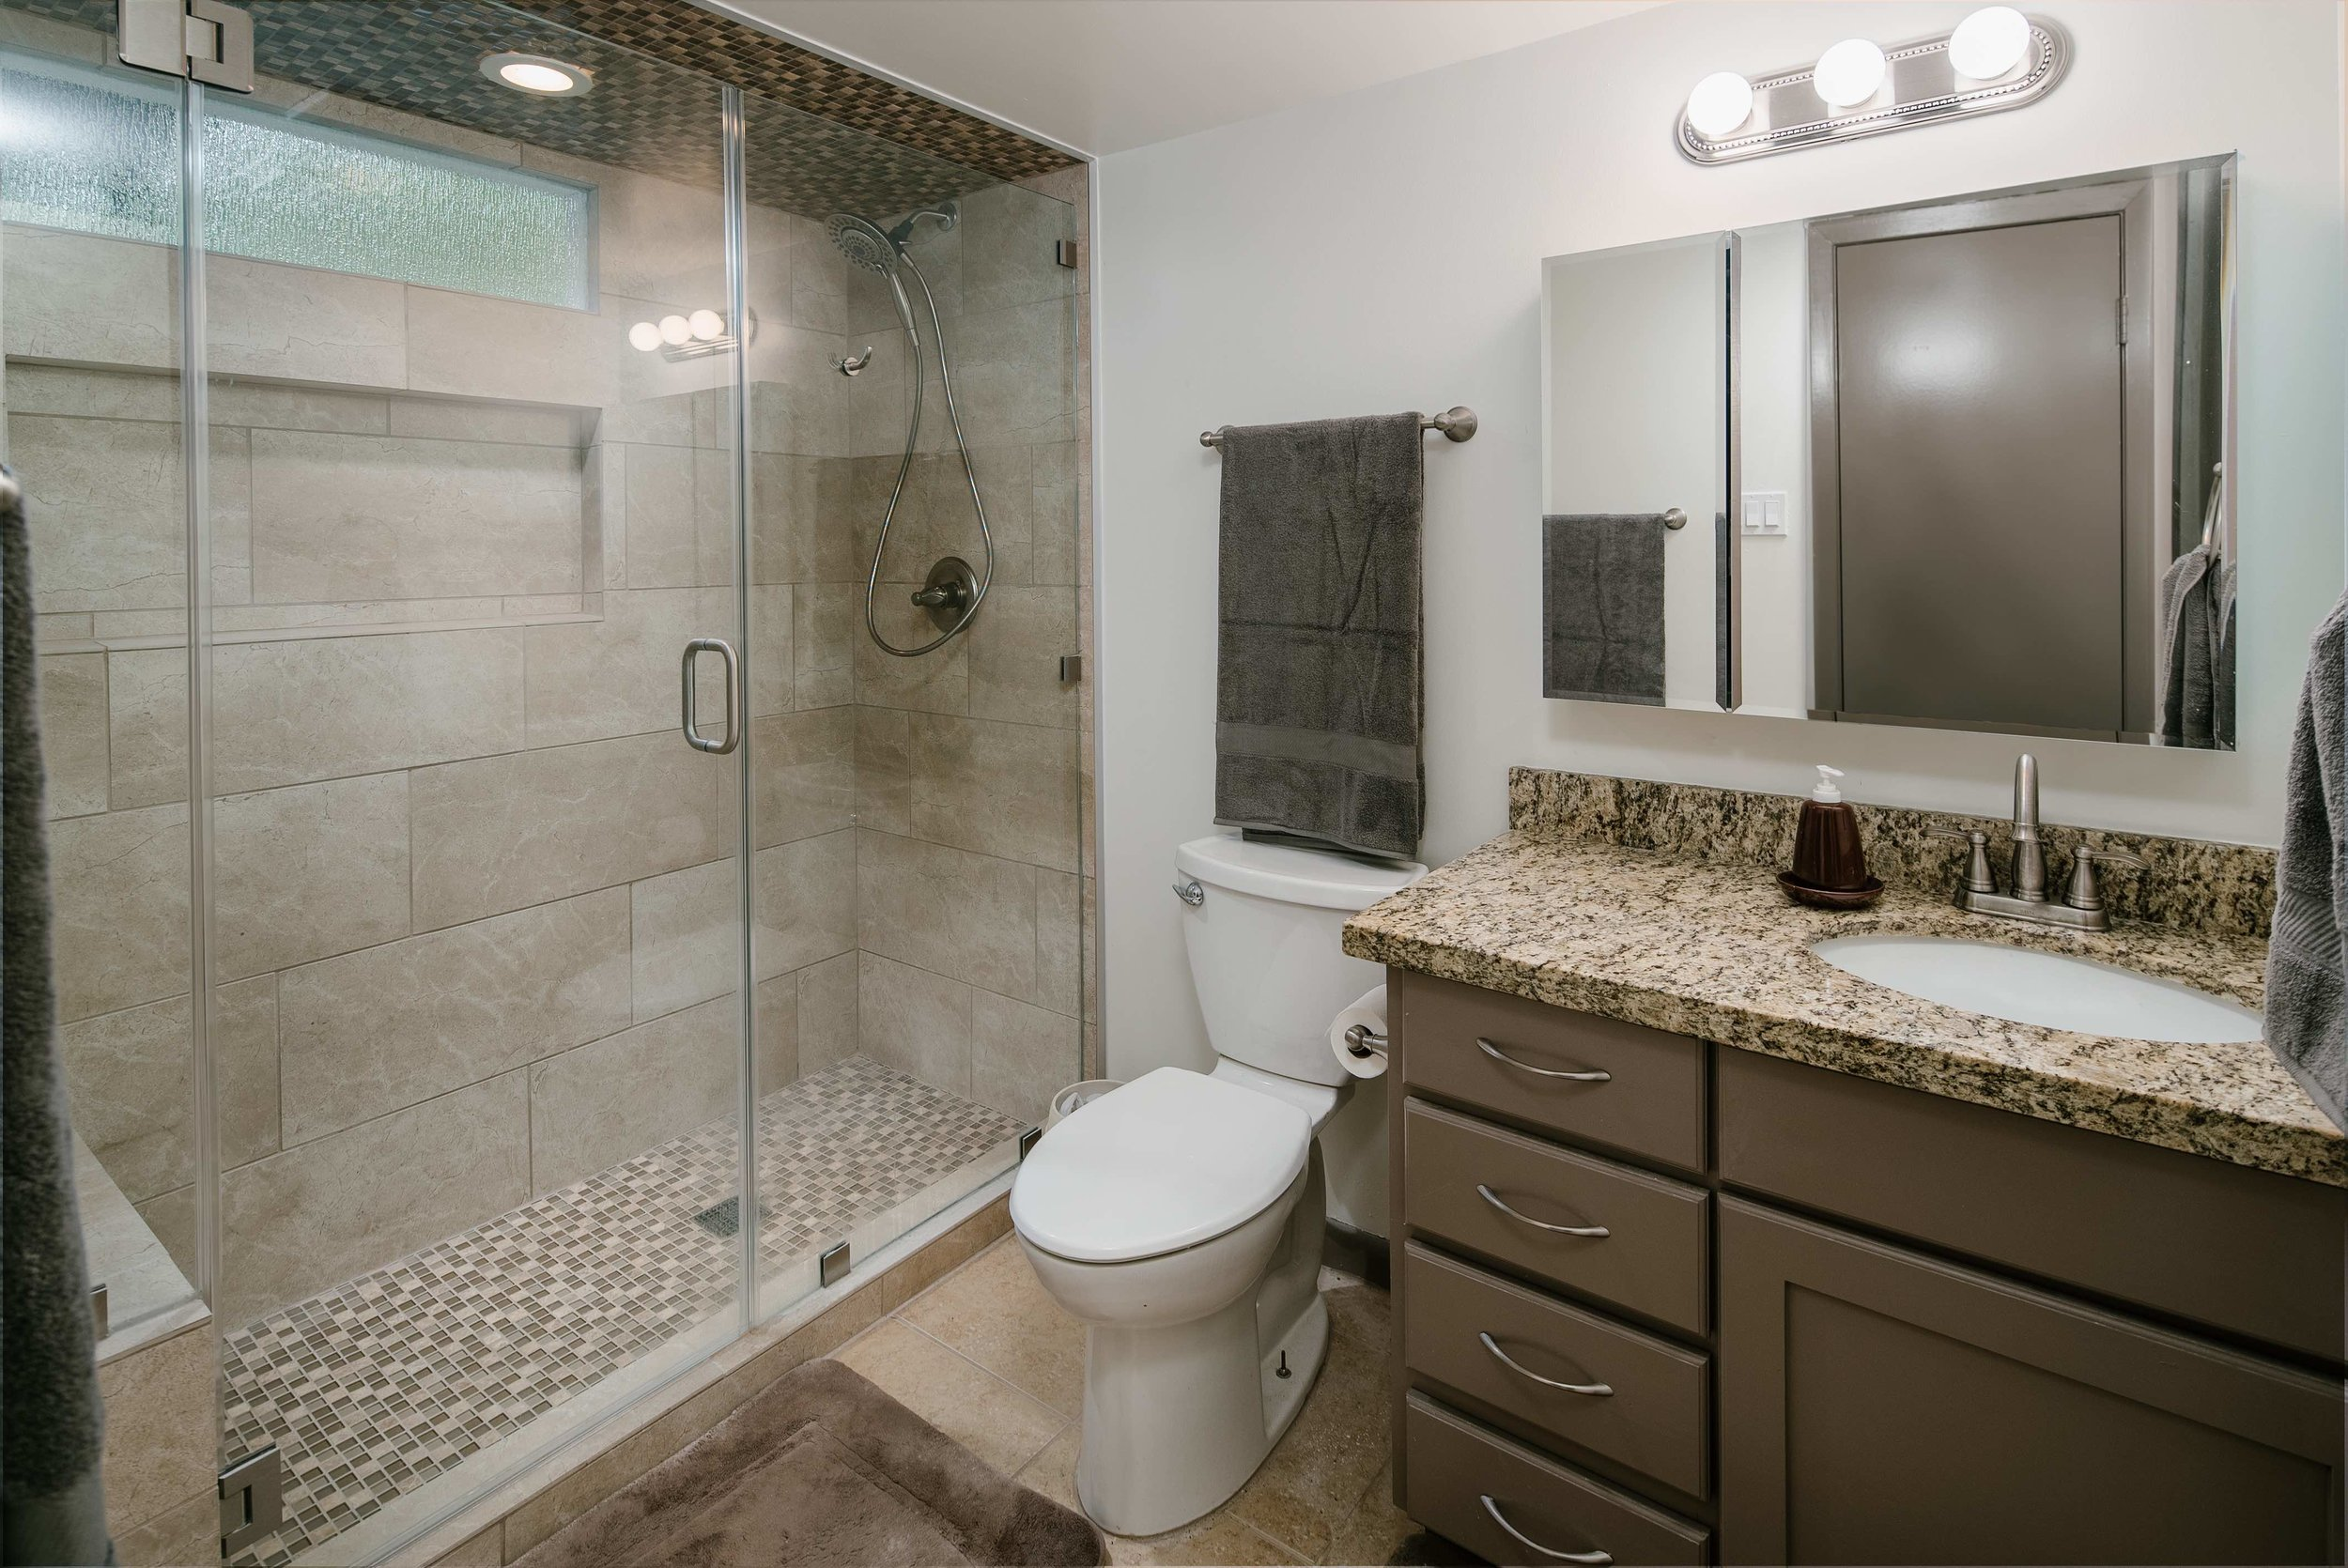 The beauty of this bathroom comes from the gorgeous granite countertops, the custom cabinets, and the simple yet elegant tile. What makes it unique however is the shower design. This shower is a long shampoo niche, frameless glass doors, and a tile rug on the floor that is mirrored on the ceiling.